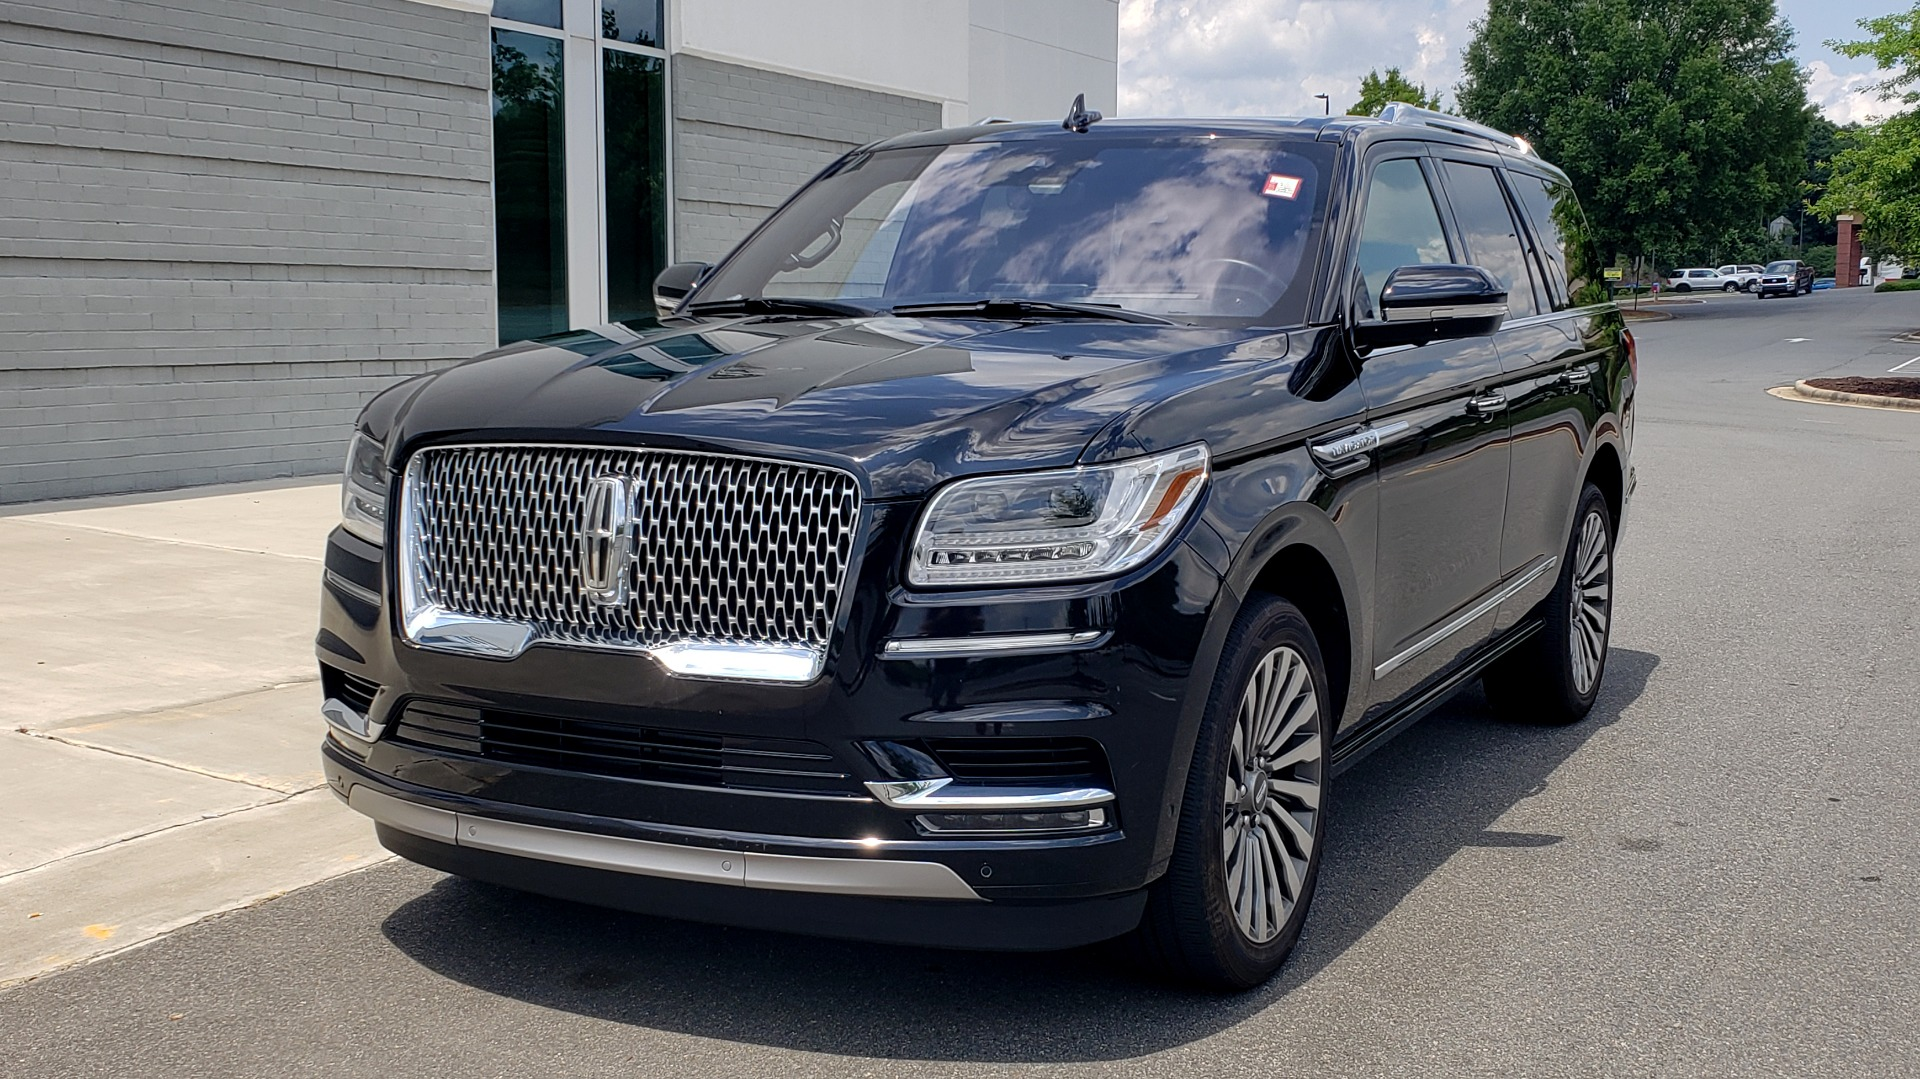 Used 2019 Lincoln NAVIGATOR RESERVE 4X4 / NAV / PANO-ROOF / REVEL ULTIMA AUDIO / 3-ROW / REARVIEW for sale $74,795 at Formula Imports in Charlotte NC 28227 3